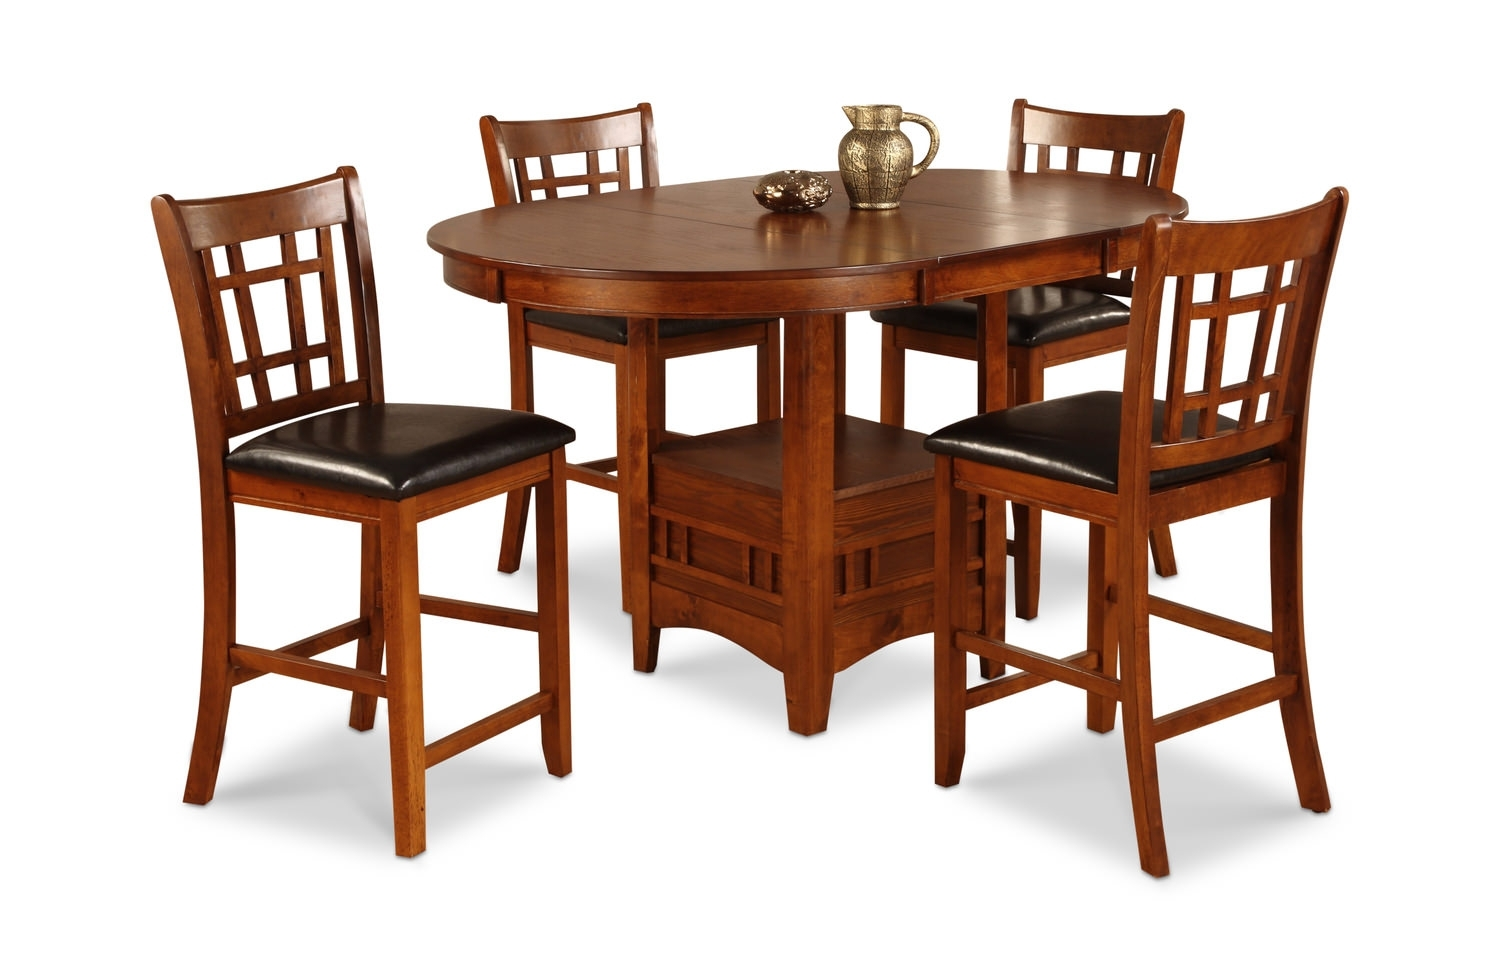 Chapleau Side Chairs With Recent Dining Sets – Kitchen & Dining Room Sets – Hom Furniture (#9 of 20)